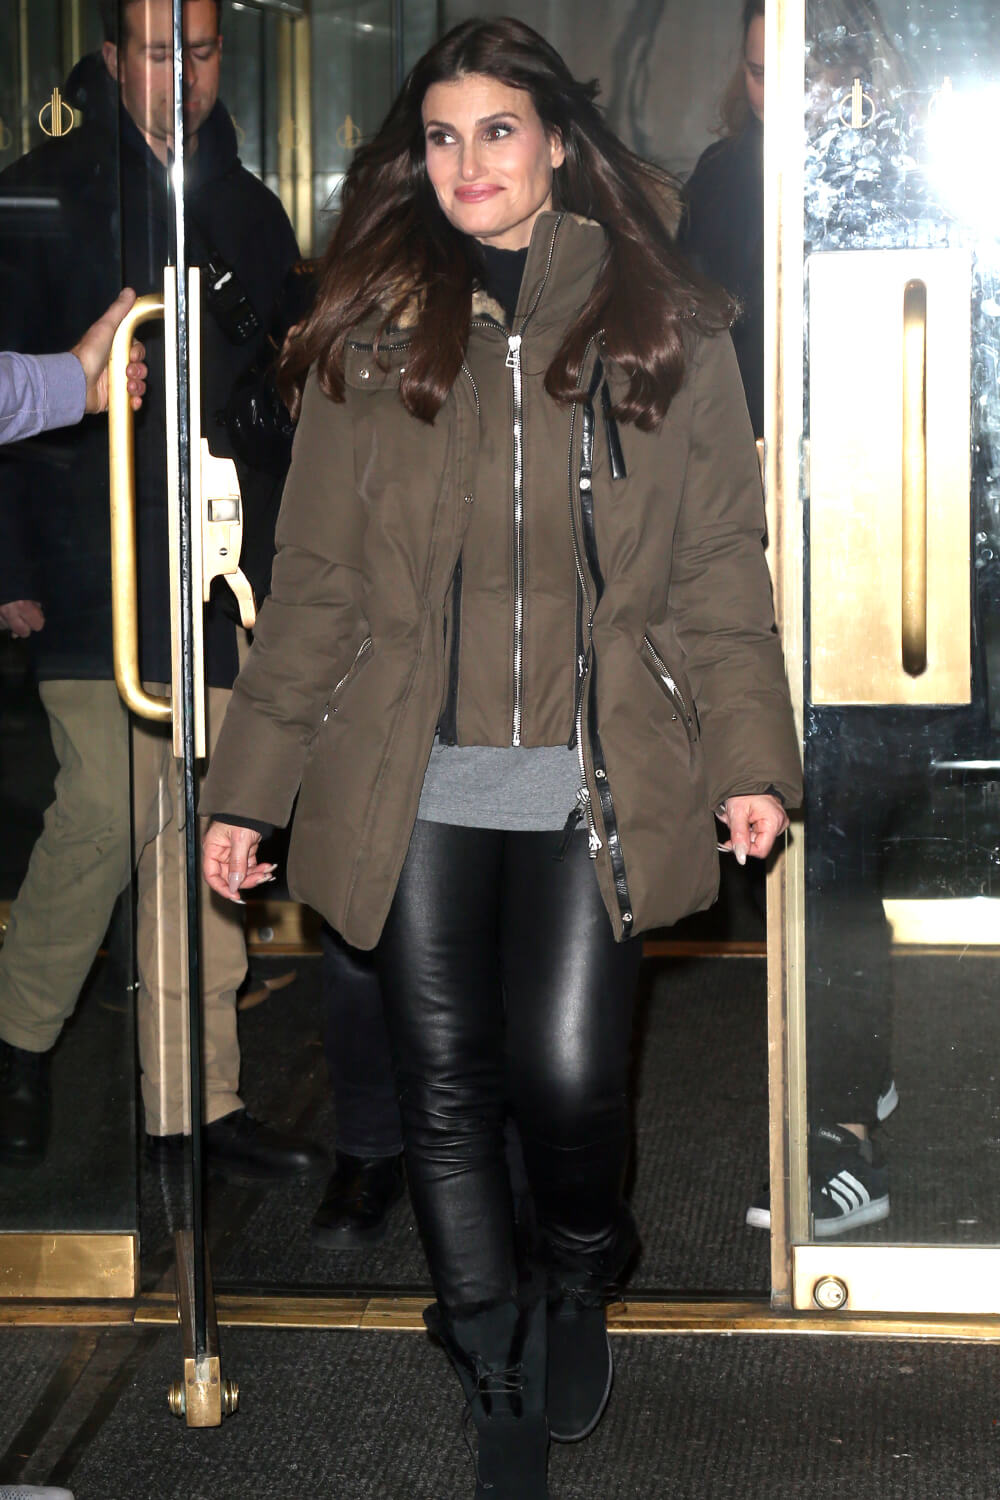 Idina Menzel out in New York